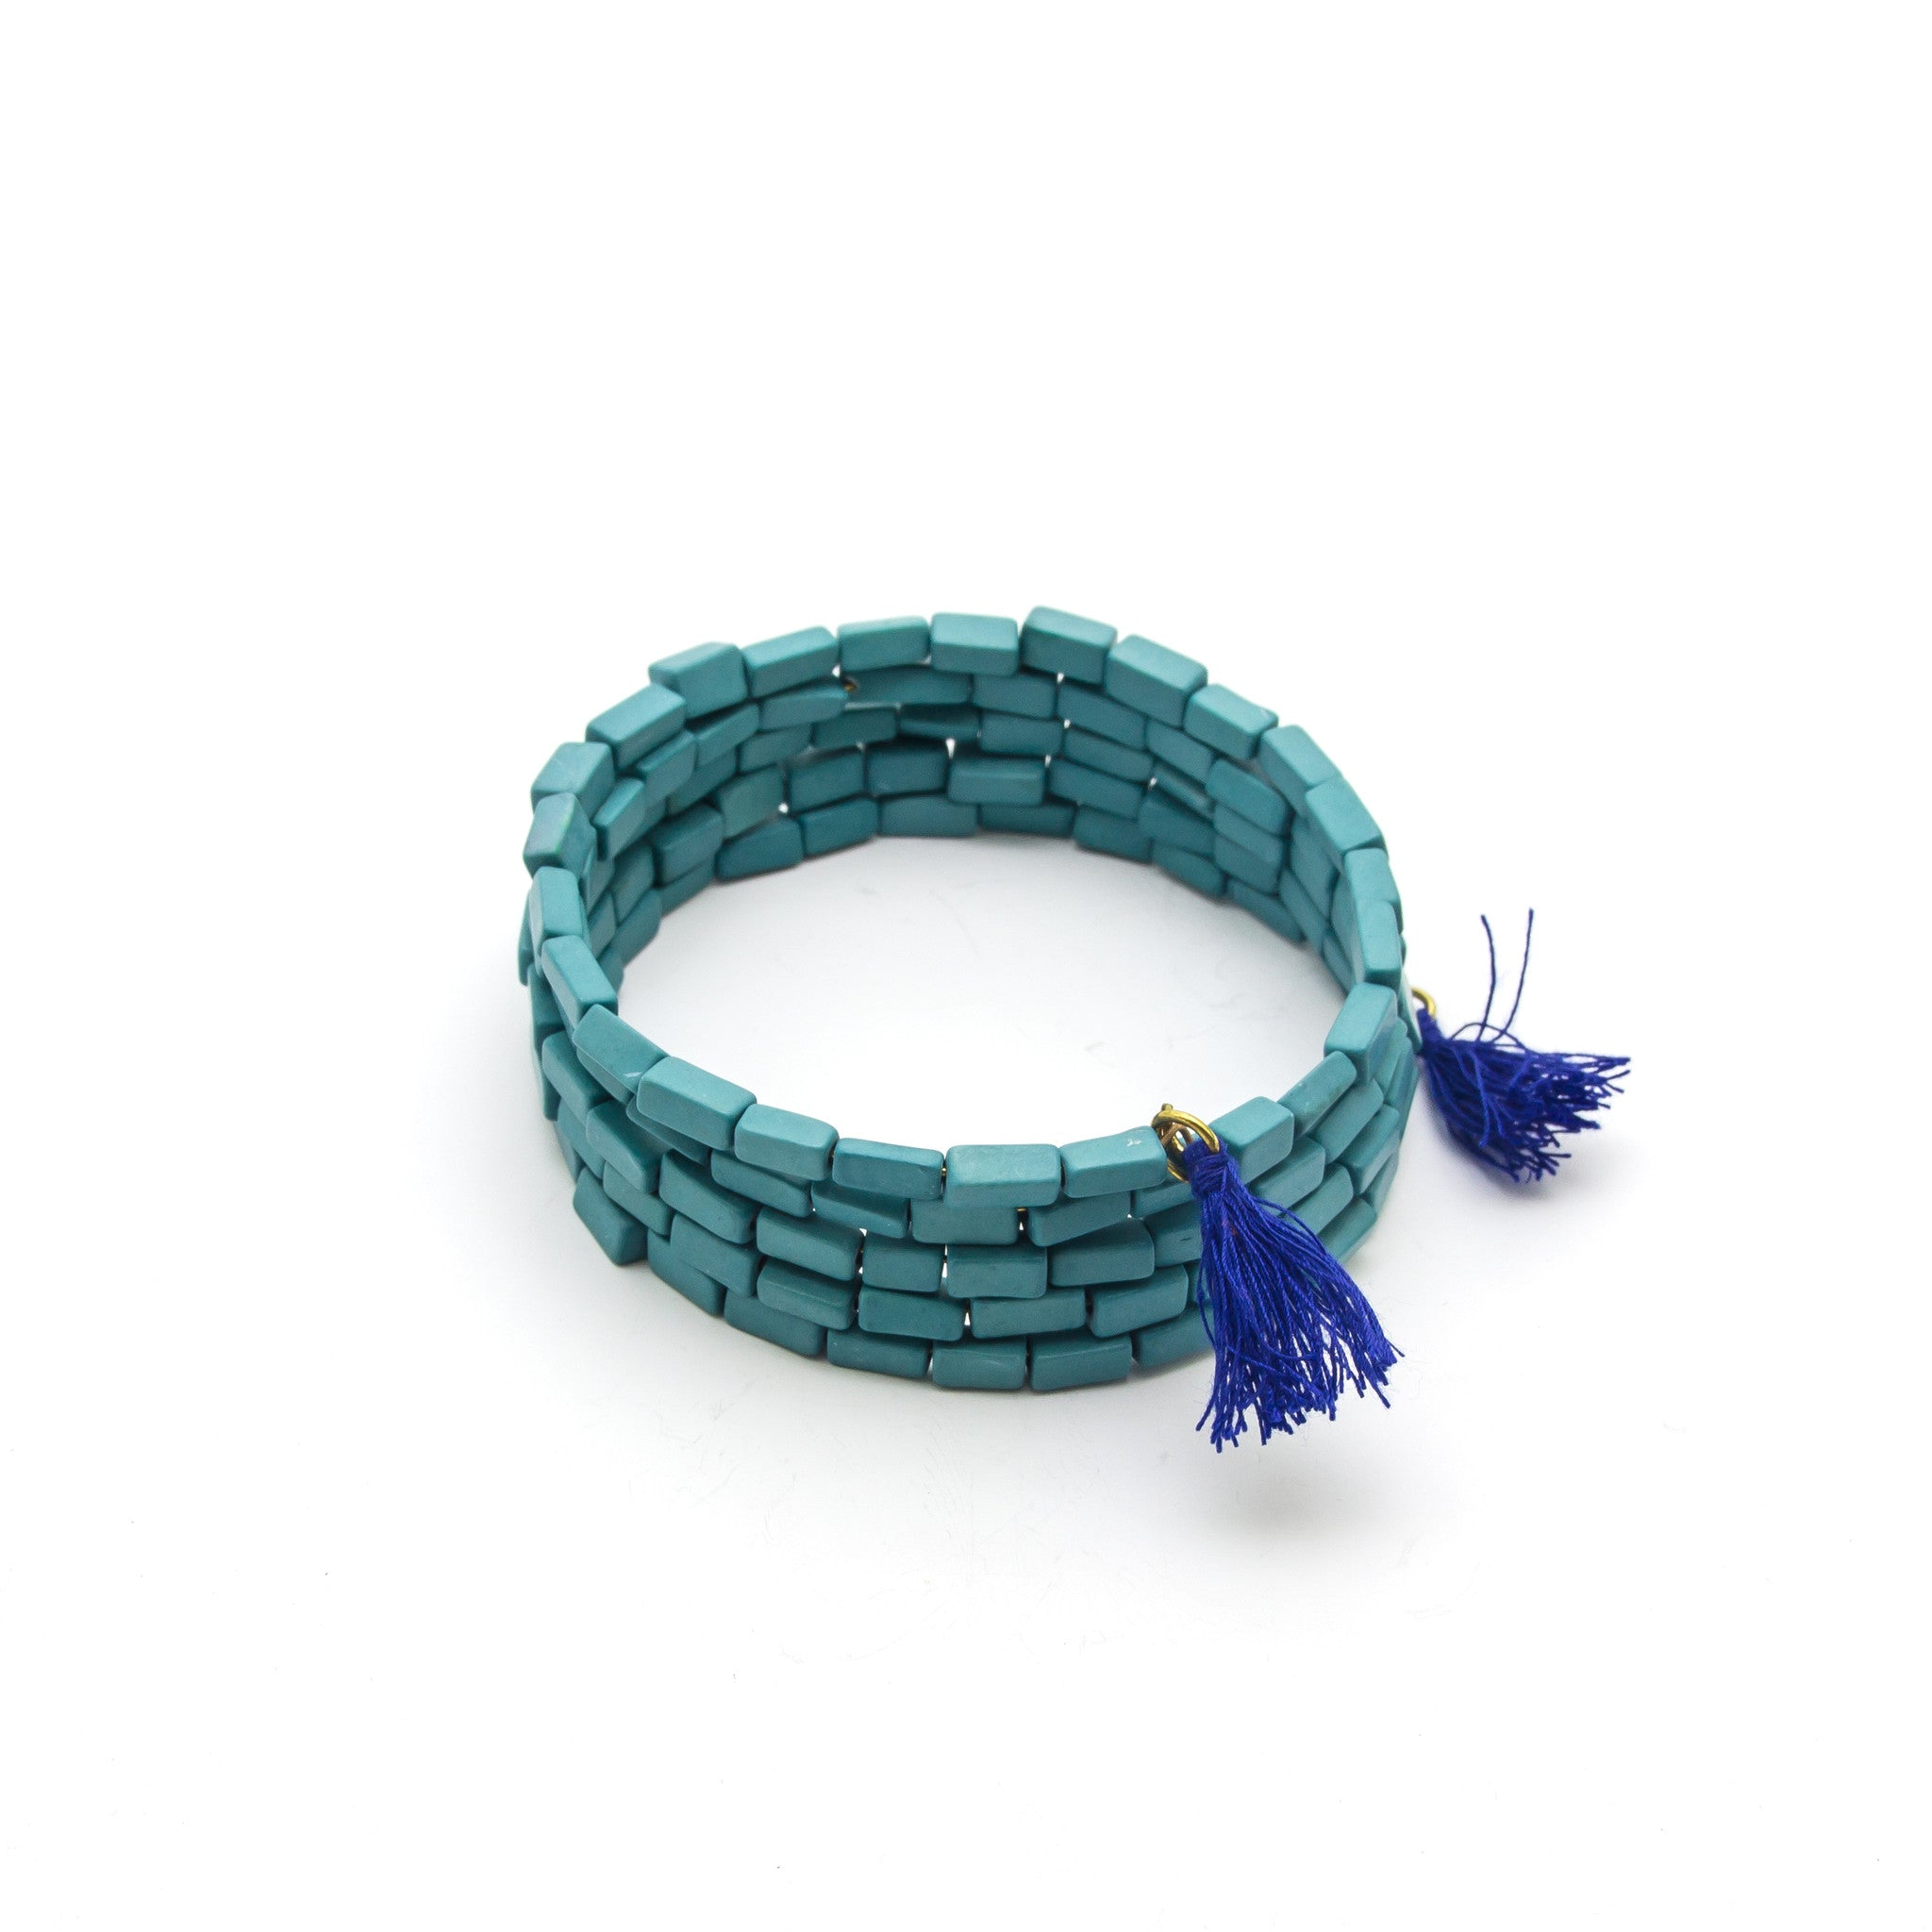 store woven bros burkman accessories beach stack bracelet official bracelets fullsizerender